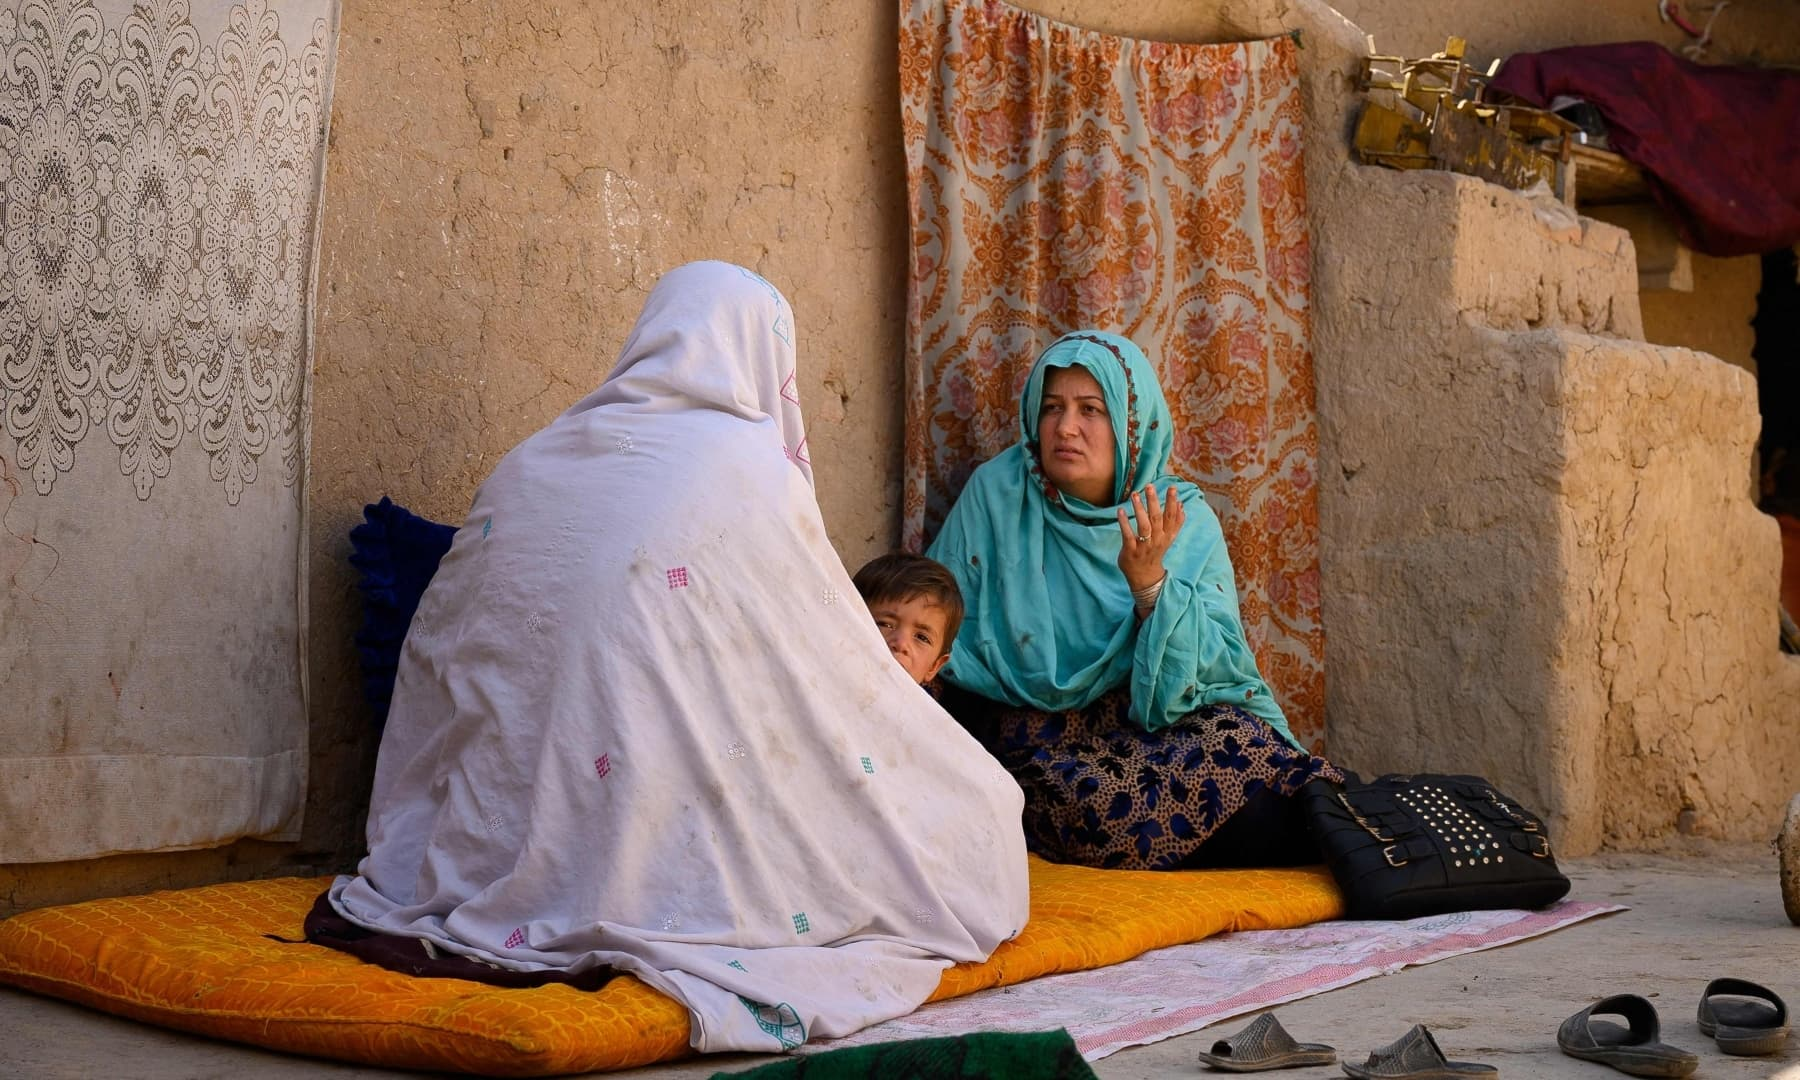 A midwife (R) speaks to a woman during a house visitation in a rural area of Dand district in Kandahar province, Afghanistan, October 1, 2020. — AFP/File